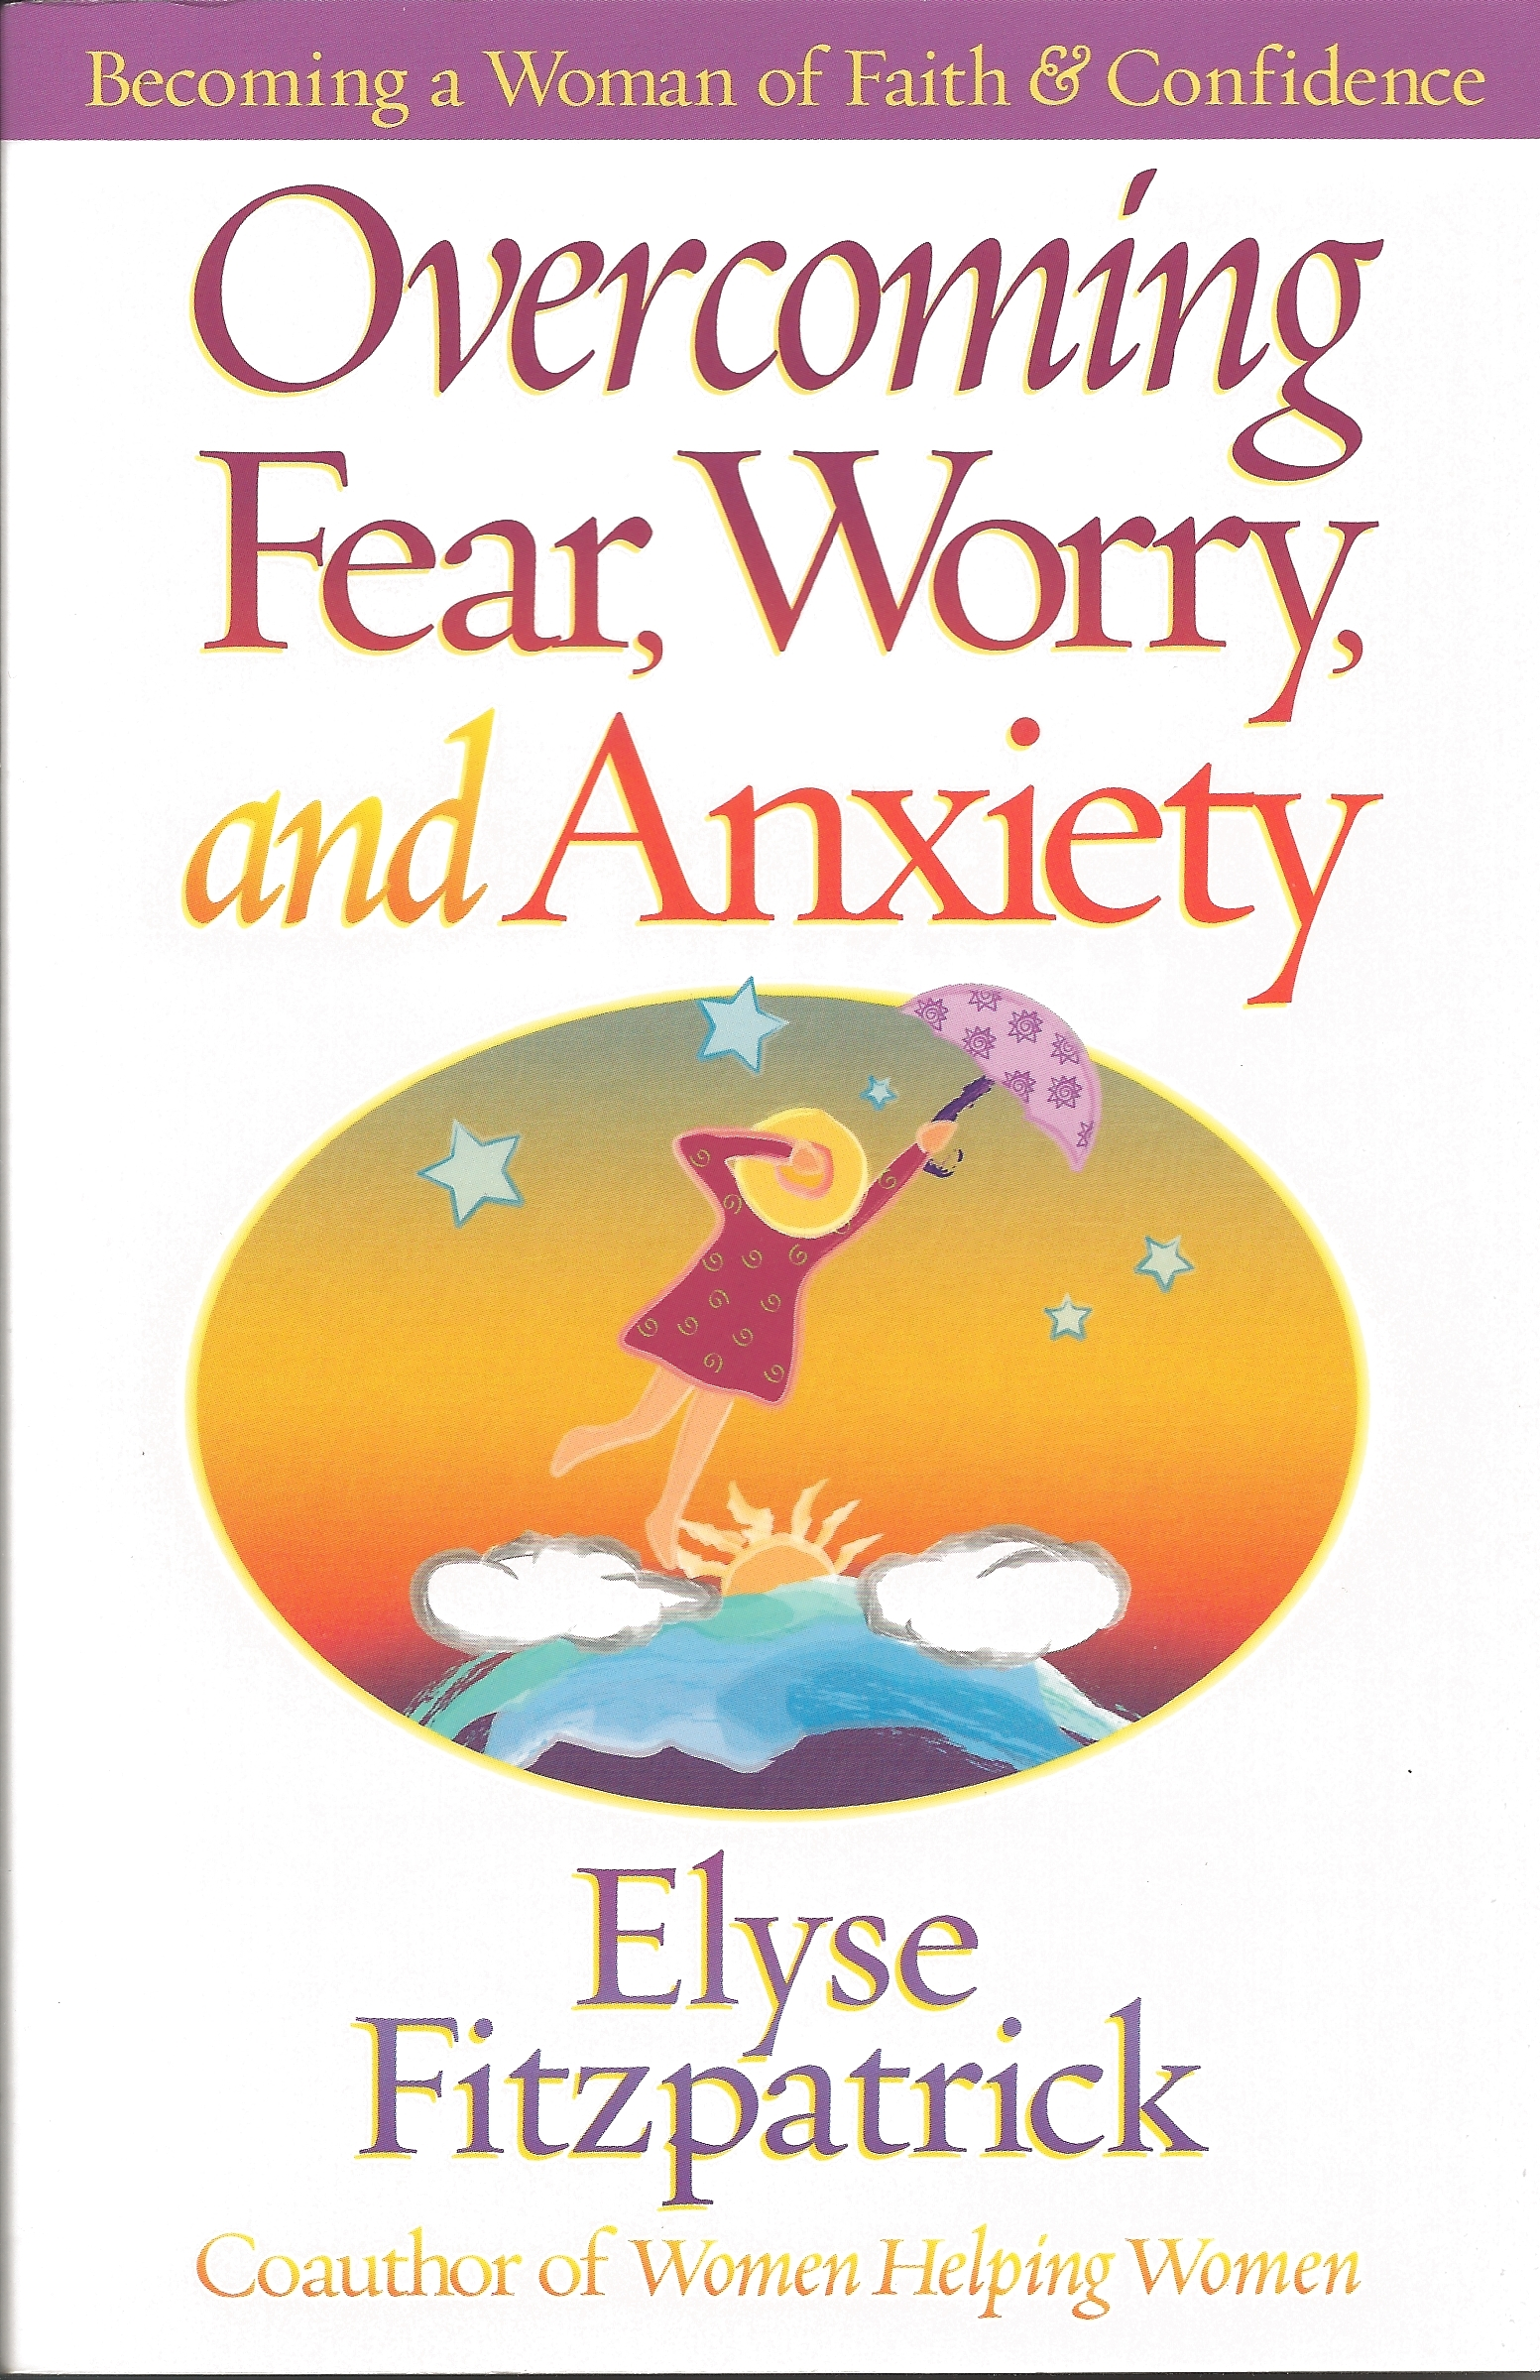 OVERCOMING FEAR, WORRY, AND ANXIETY Elyse Fitzpatrick